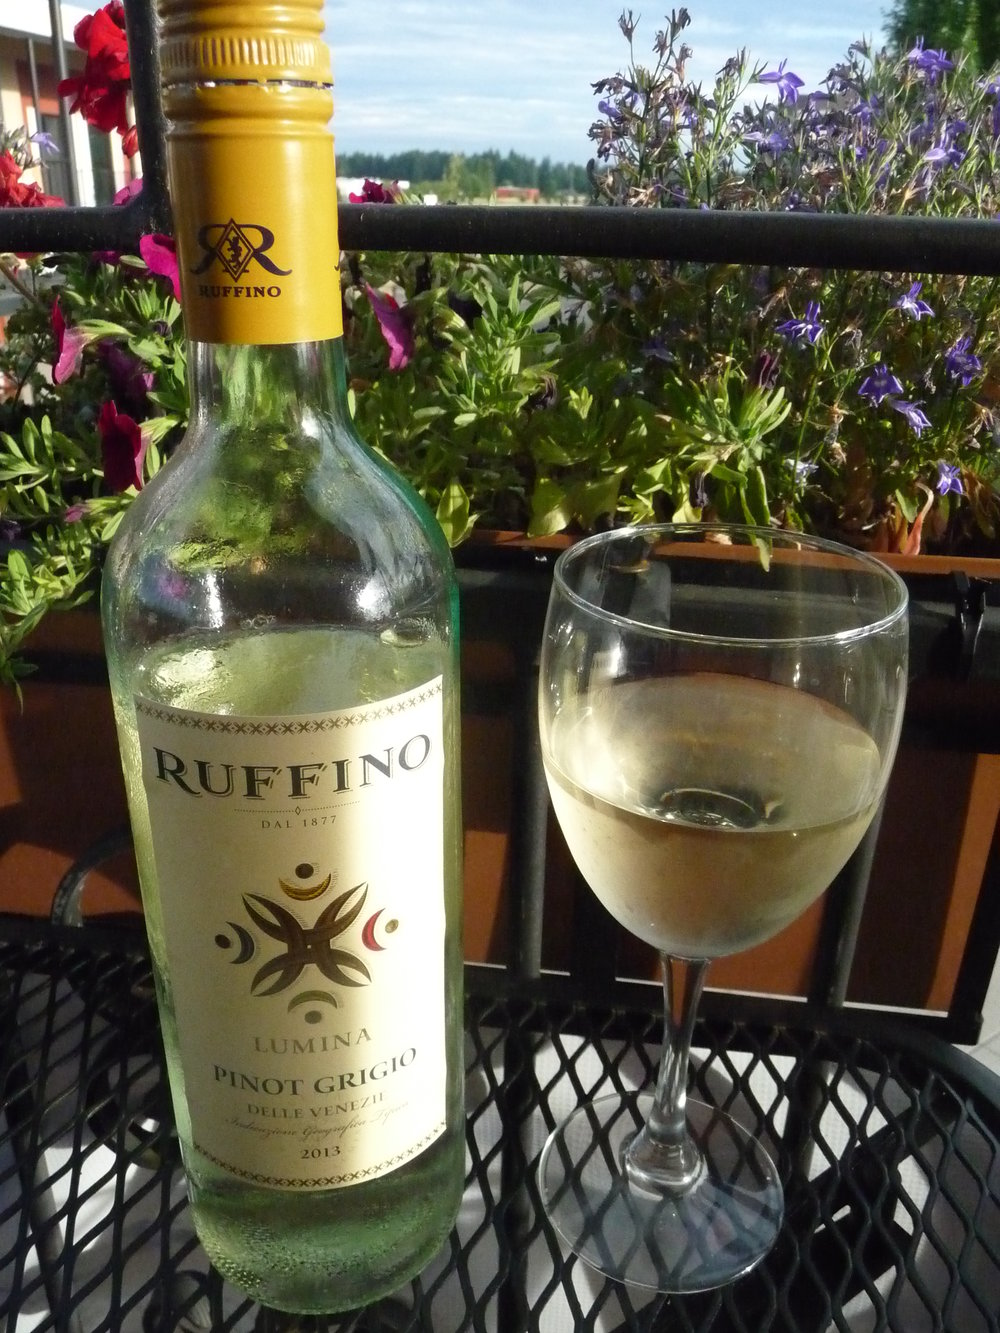 A bottle of Ruffino Pinot Grigio fit the evening. Light, crisp, slightly citrusy and a little floral.